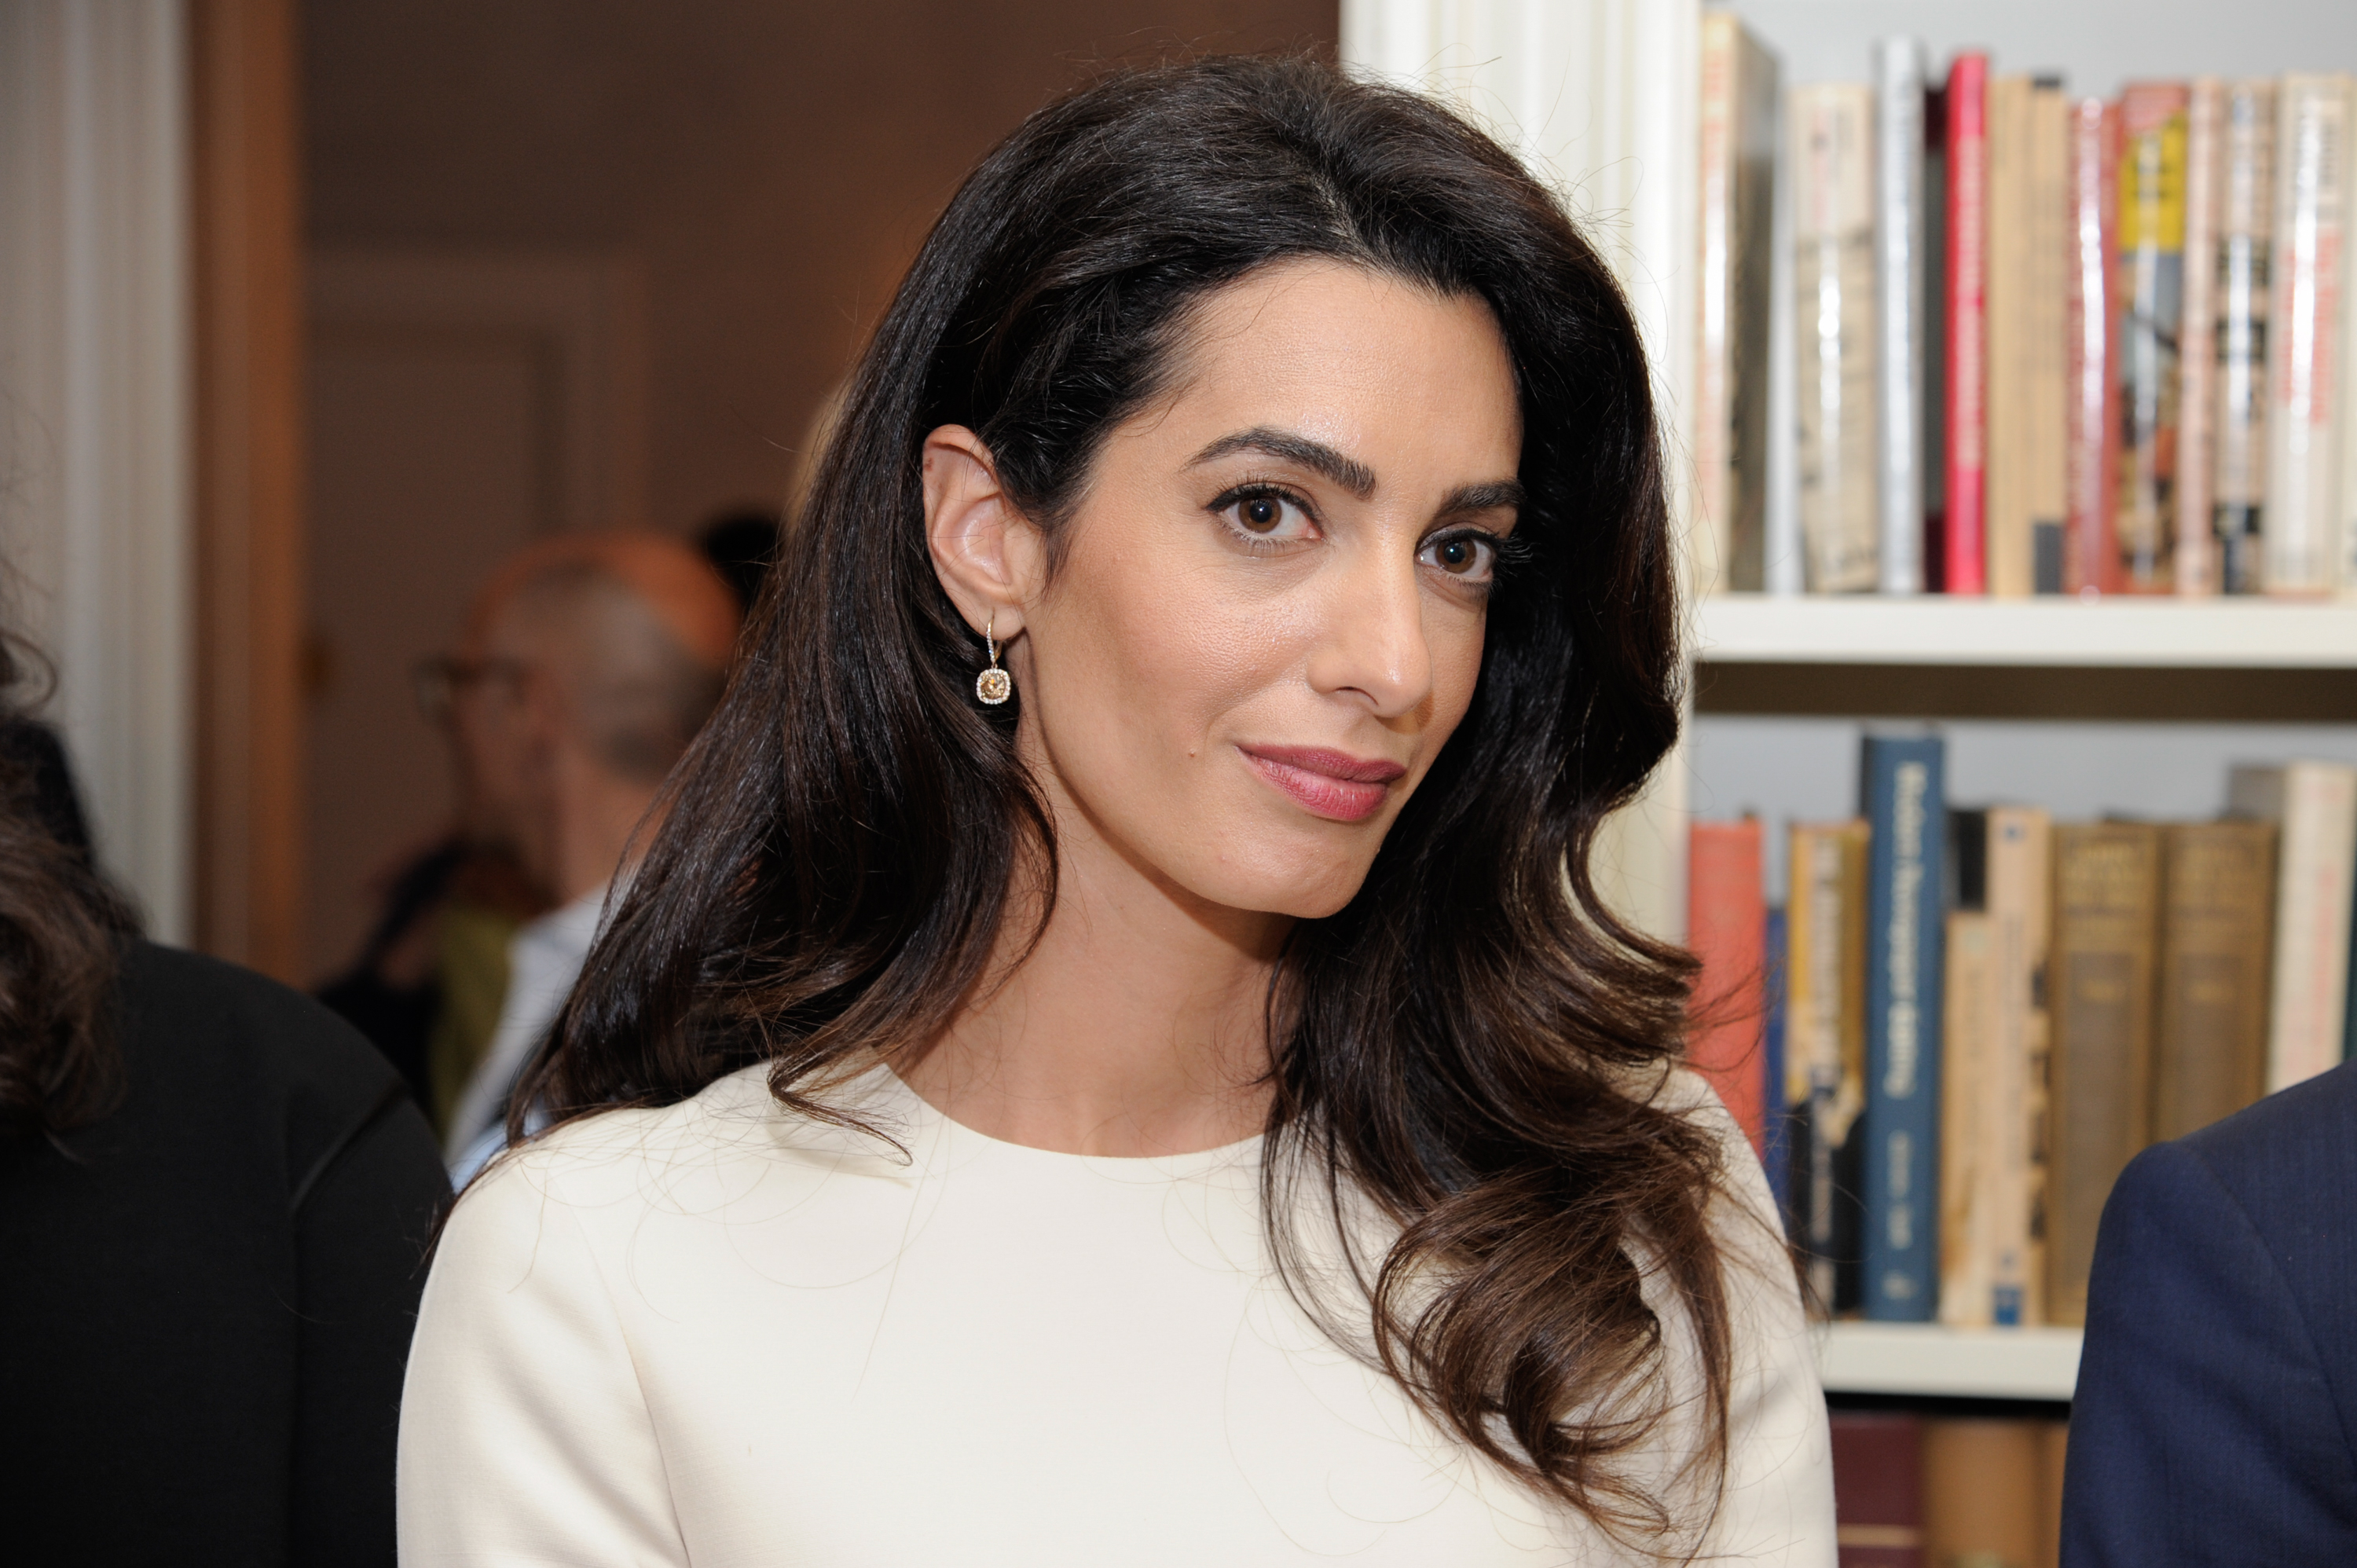 Amal Clooney attends the Women In The World reception honoring appointment of UN Office on Drugs and Crime Goodwill Ambassador Nadia Murad on September 16, 2016 in New York City.